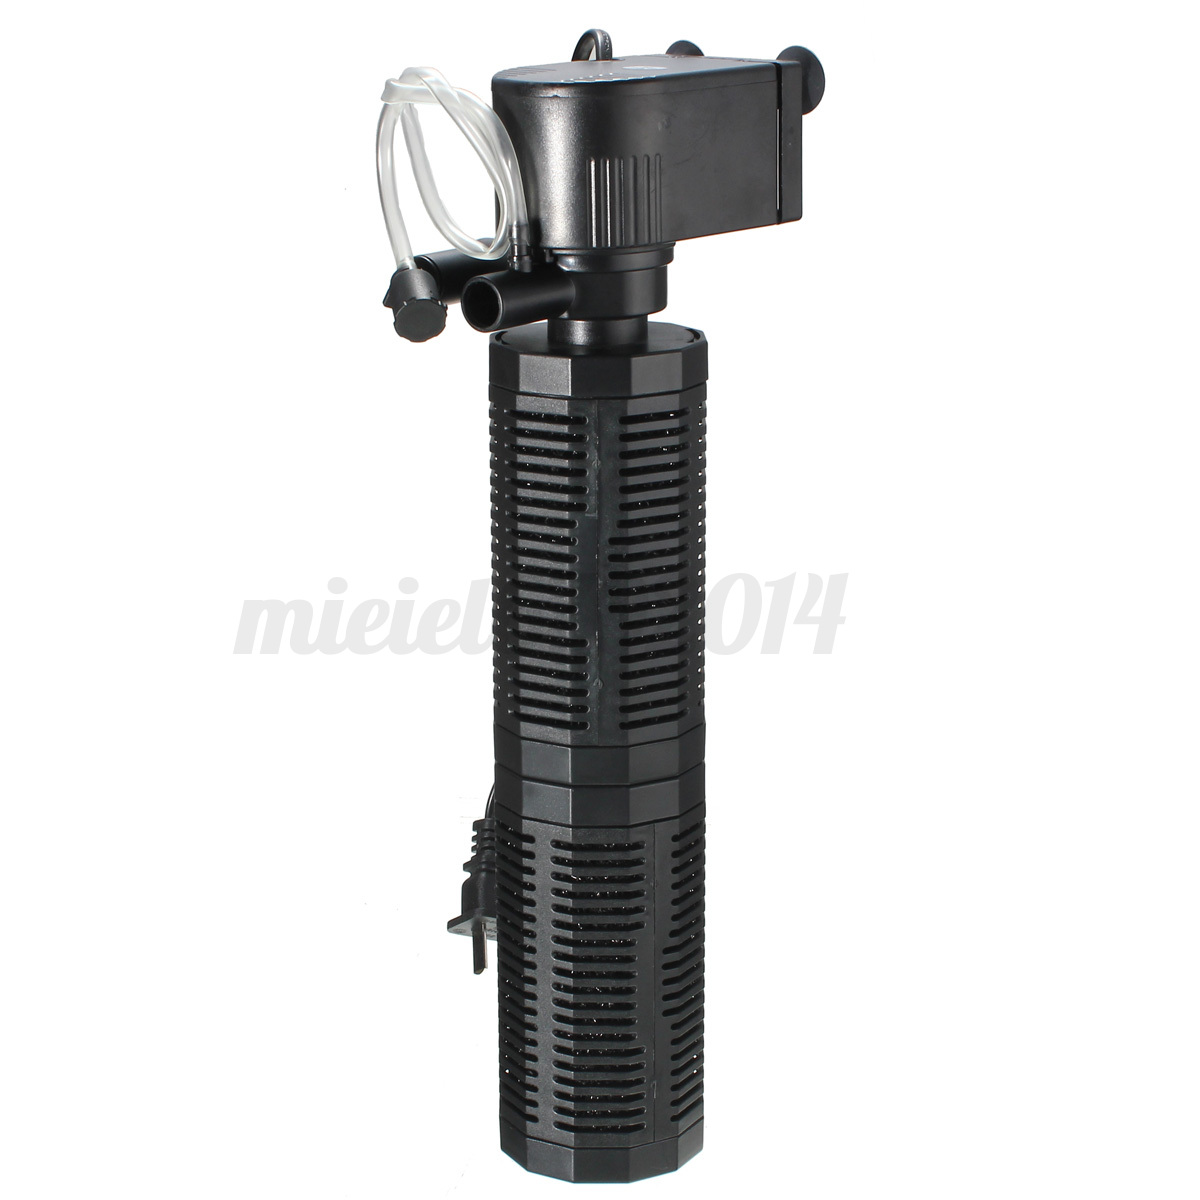 3 model submersible aquarium internal filter water pump f for Submersible pond pump with filter